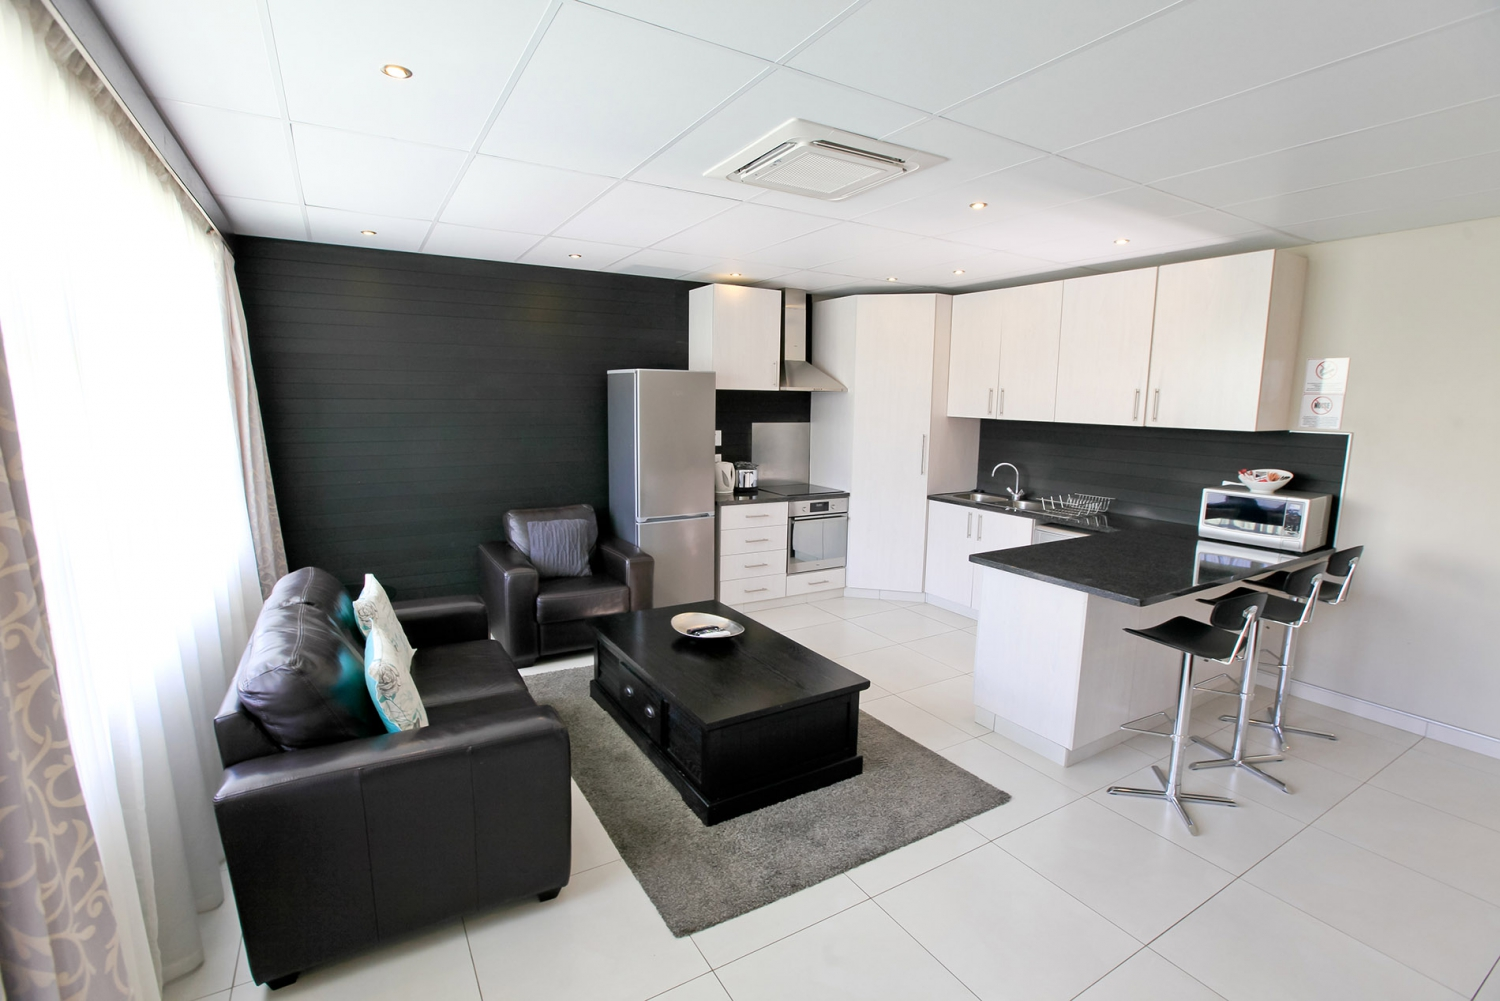 hillside executive self catering apartments hotel in namibia my guide namibia. Black Bedroom Furniture Sets. Home Design Ideas